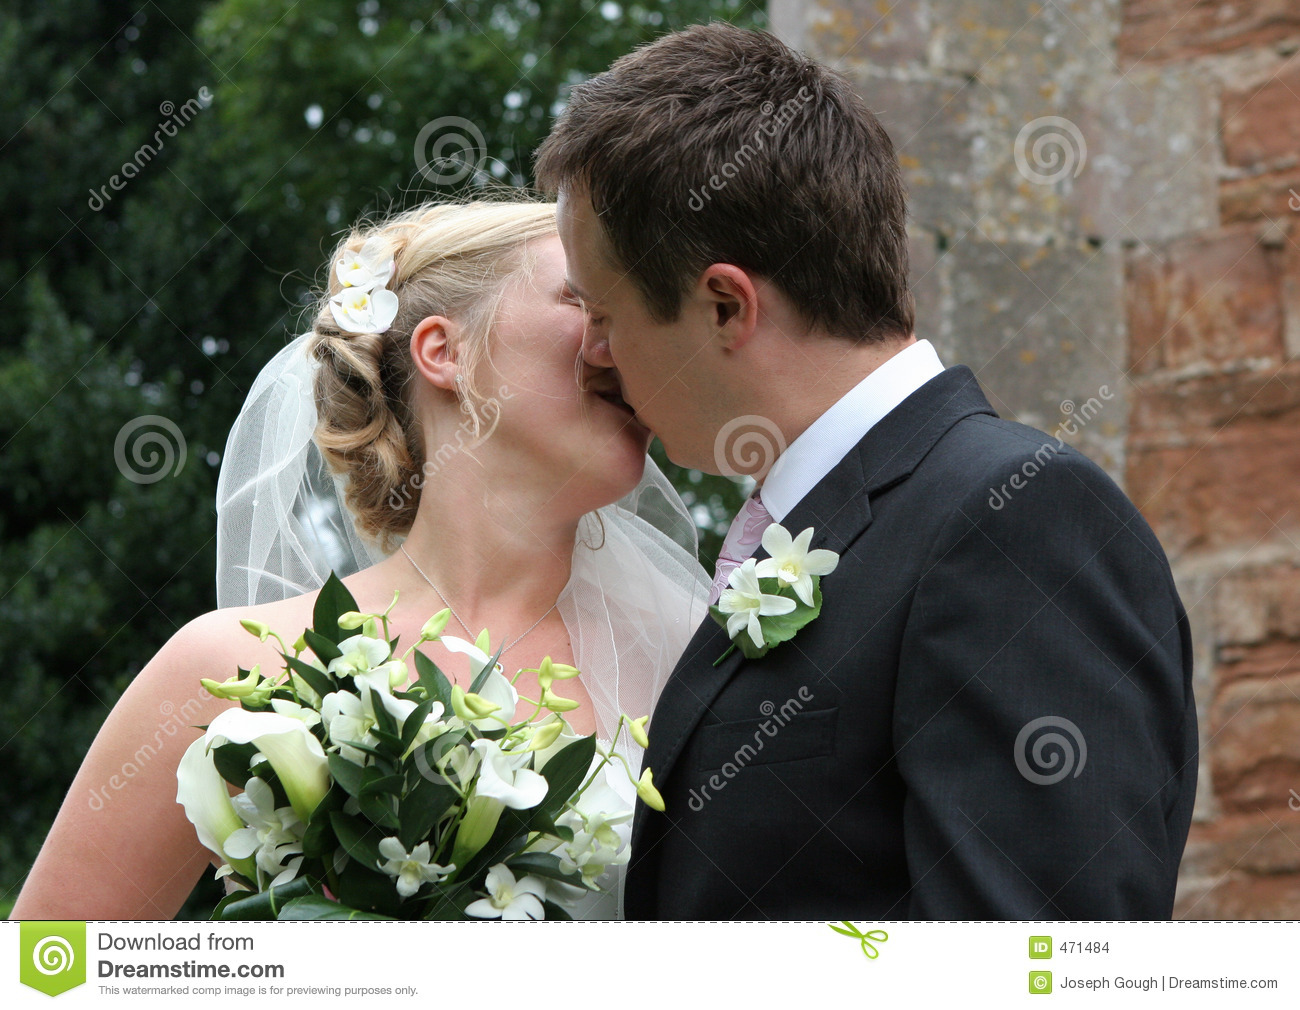 Download The Kiss stock photo. Image of suit, wedding, groom, blond - 471484